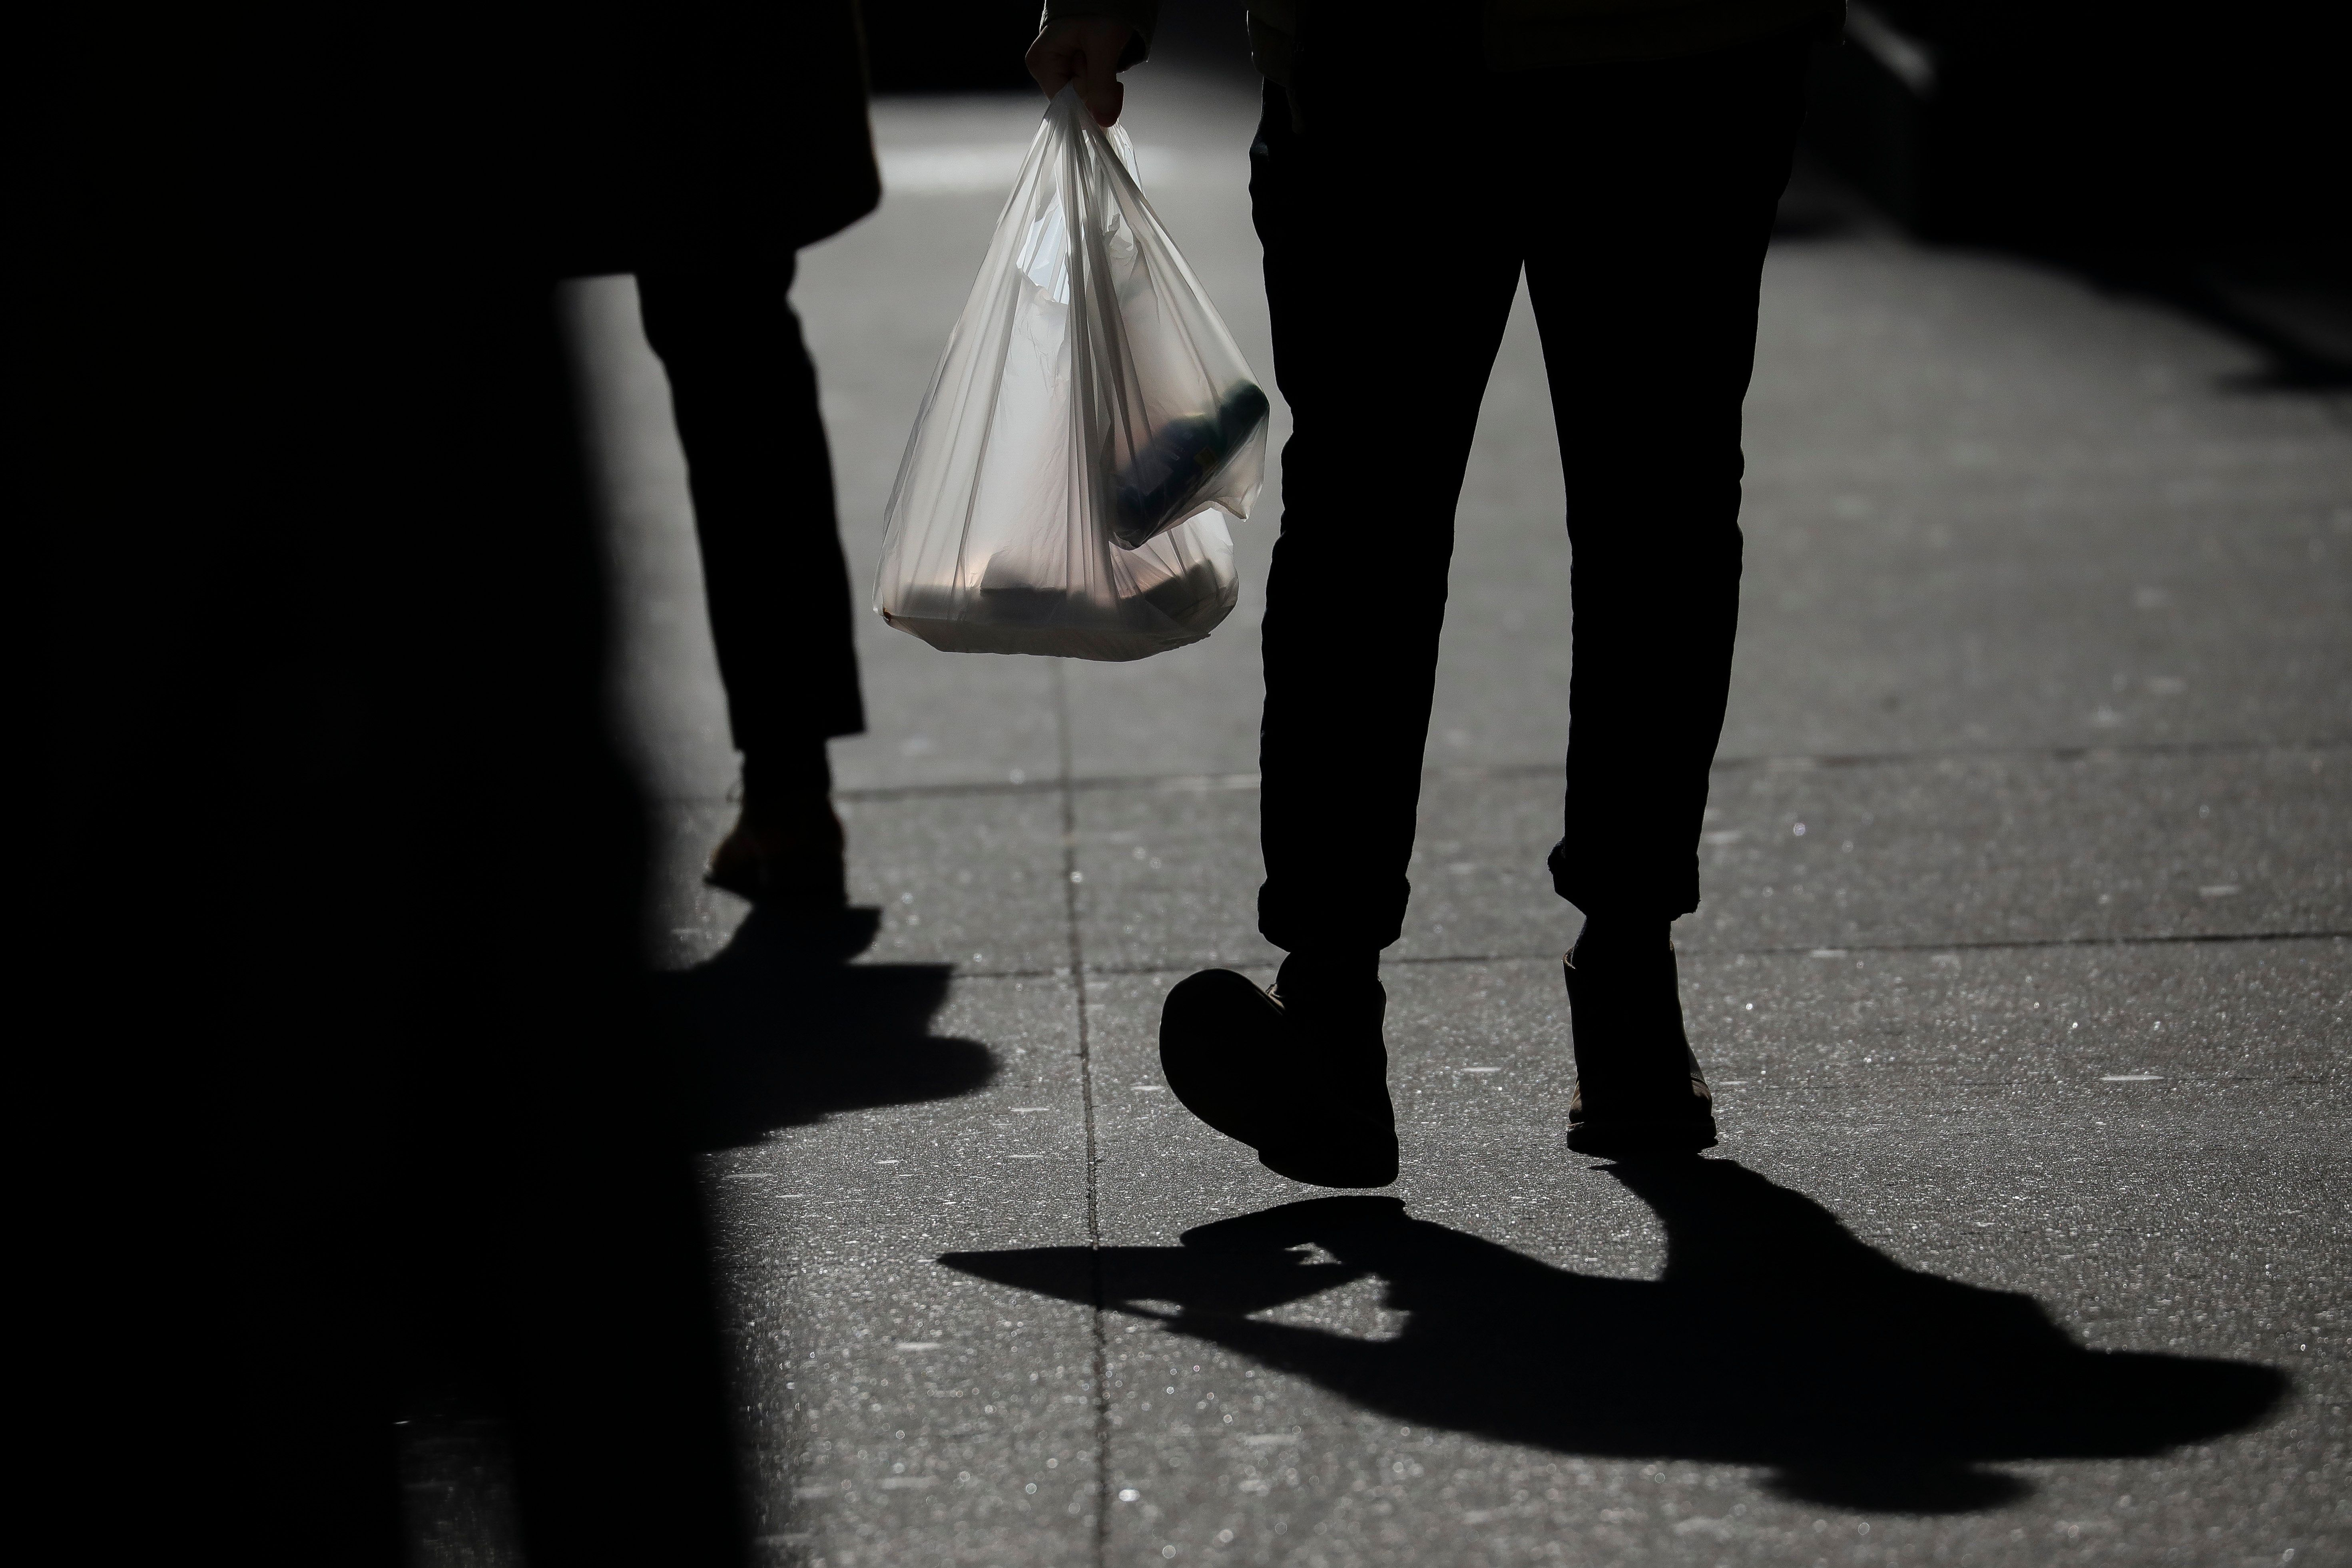 NEW YORK, NY - JANUARY 15: A person carries a plastic bag during the lunch hour in Lower Manhattan, January 15, 2019 in New York City. New York Governor Andrew Cuomo is planning to push for a statewide ban on single-use plastic shopping bags as part of his 2019 budget, which he is scheduled to introduce in Albany on Tuesday. (Photo by Drew Angerer/Getty Images)